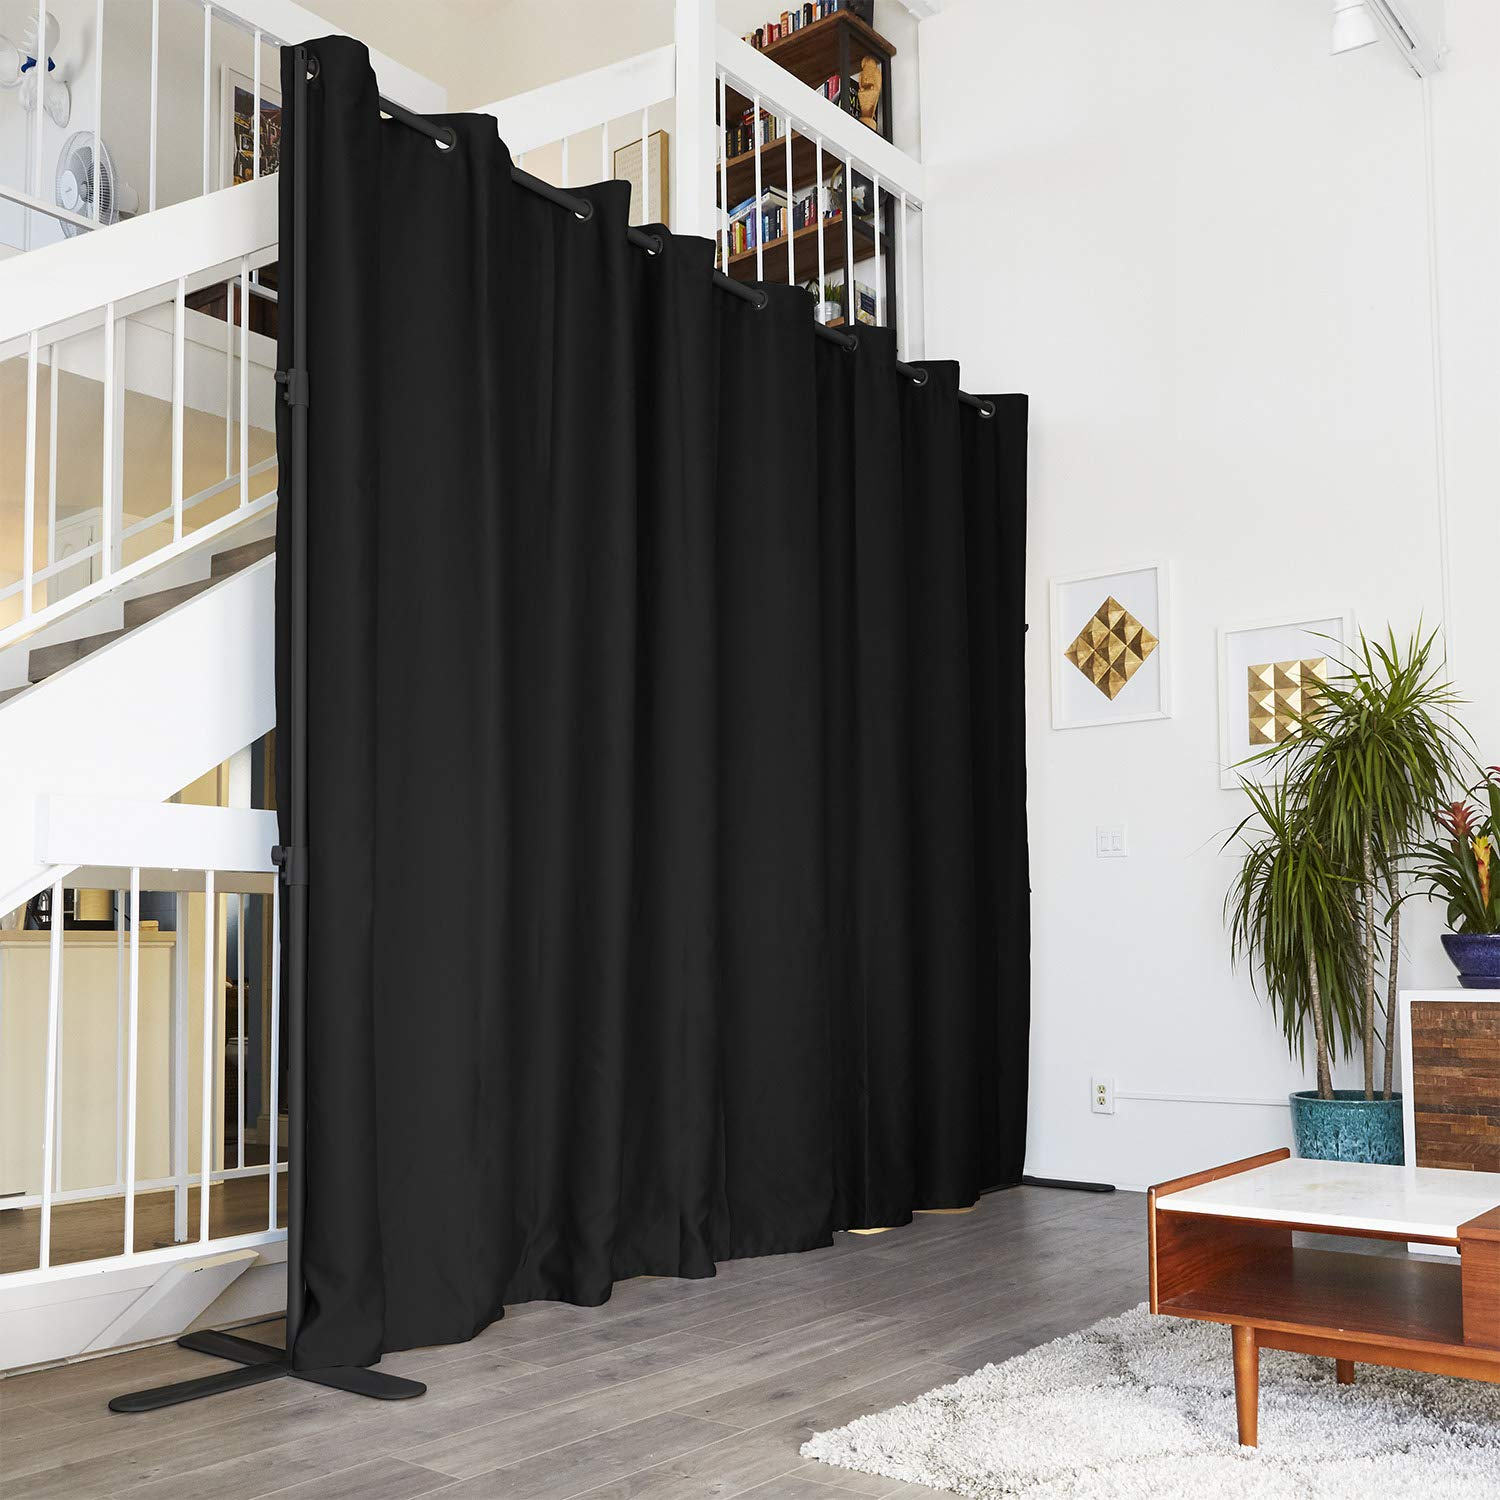 RoomDividersNow End2End Room Divider Kit - X-Large A, 8ft Tall x 14ft - 18ft Wide, Midnight Black by RoomDividersNow